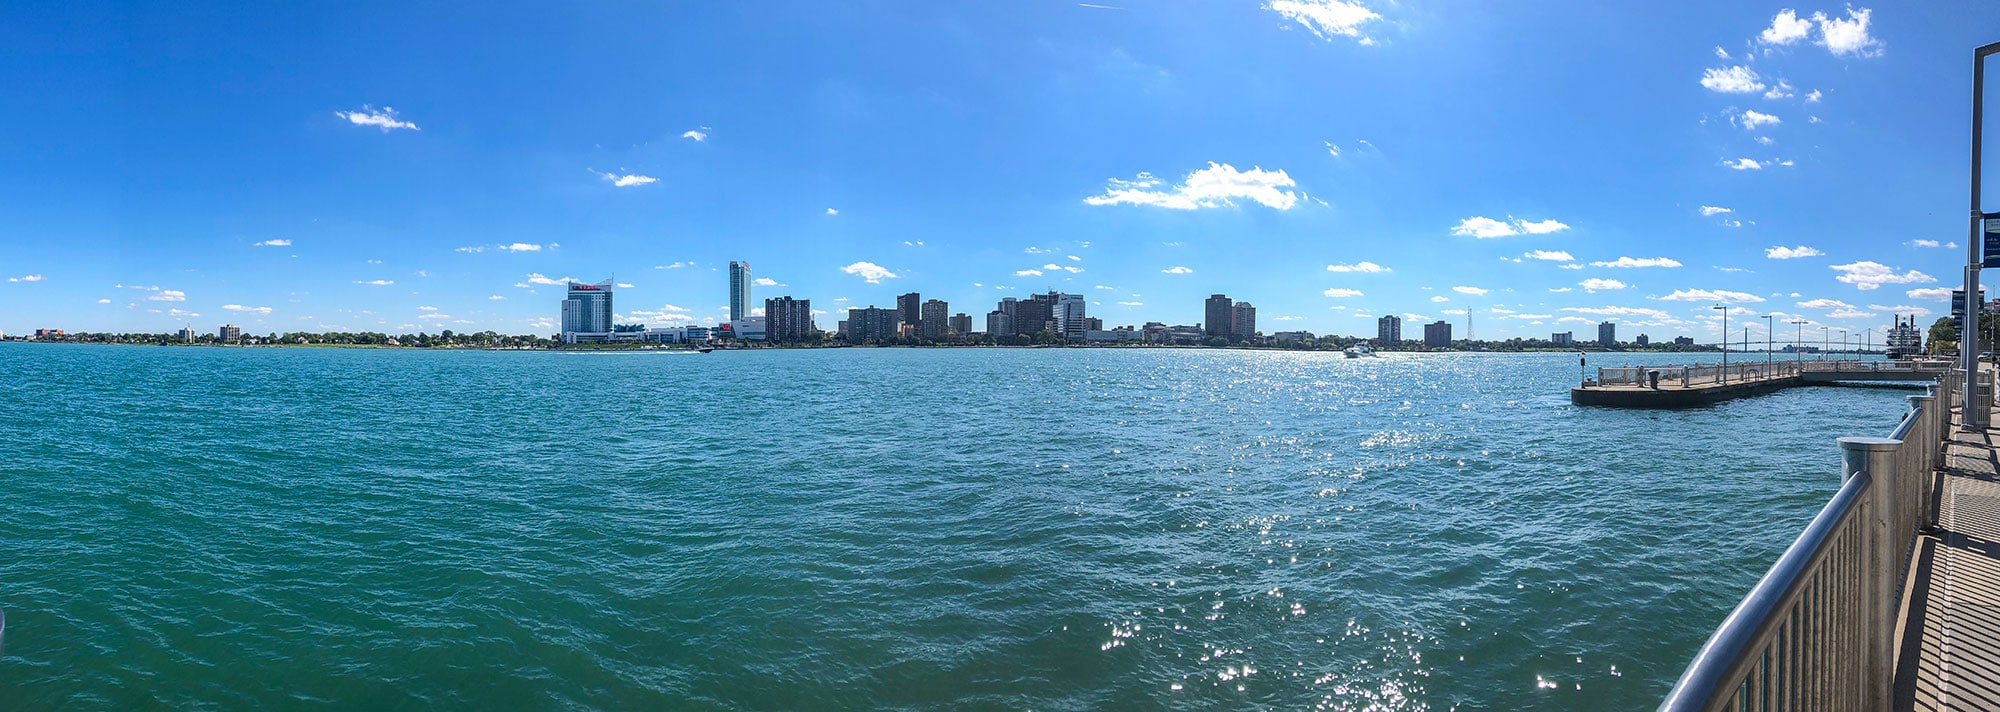 Panoramic of Detroit Riverfront